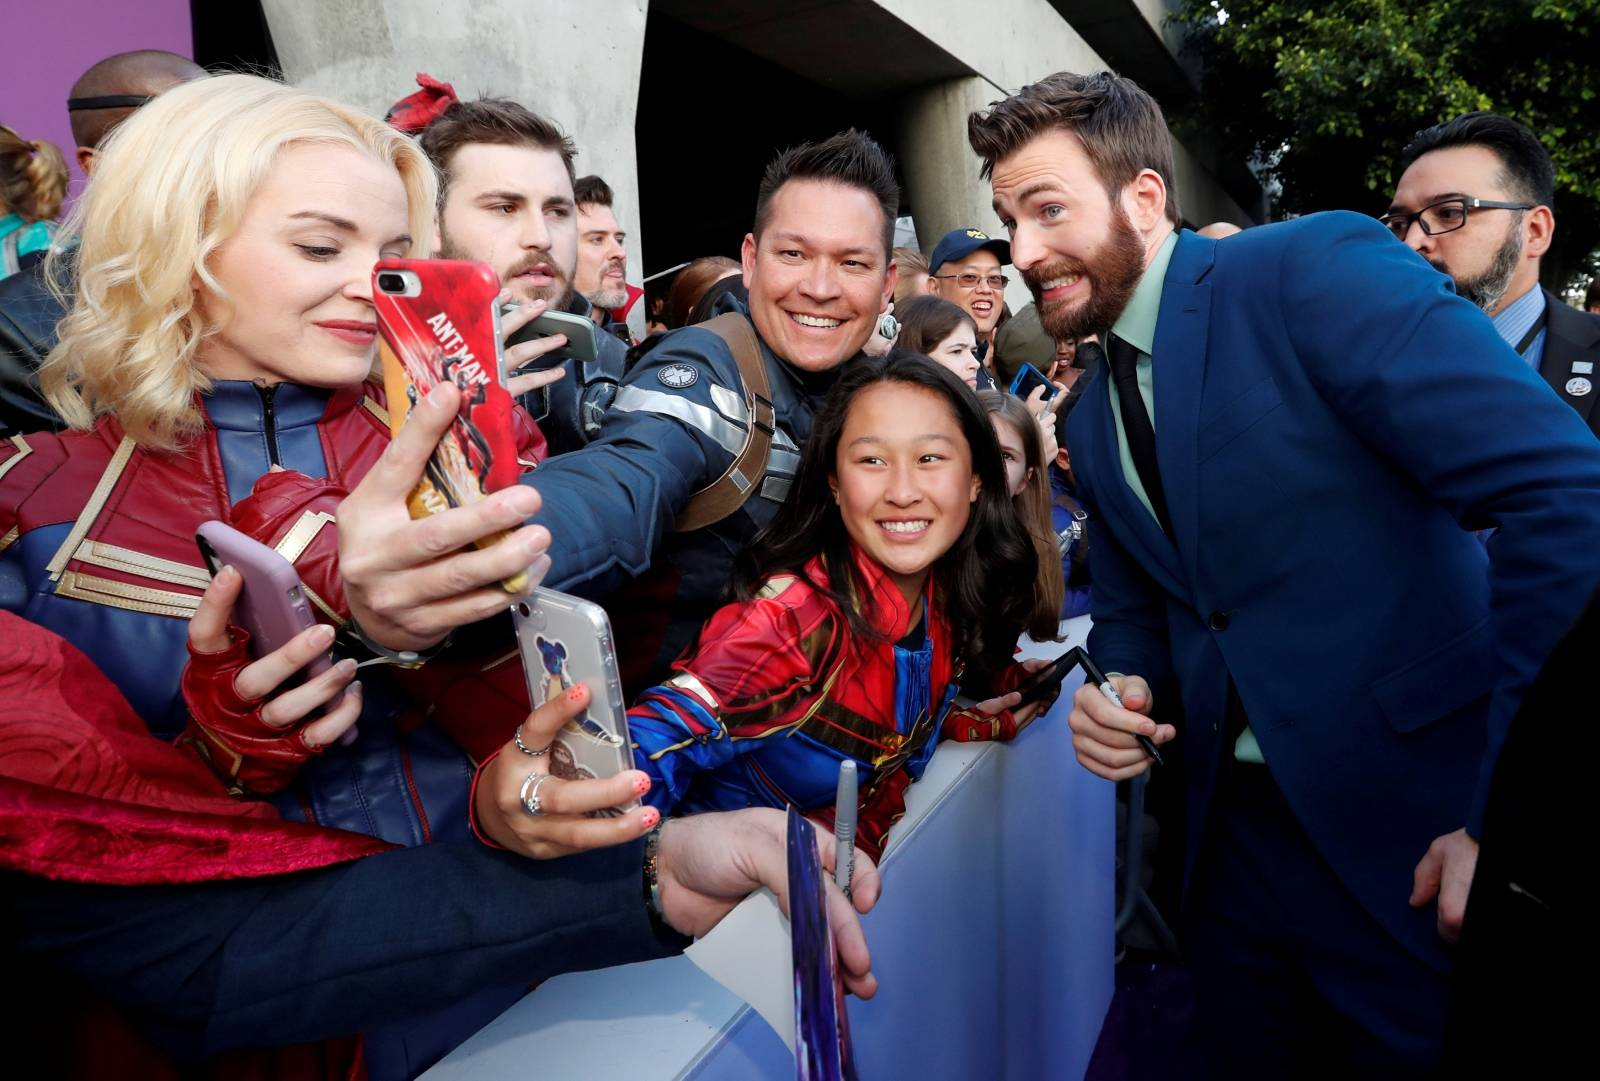 """Cast member Chris Evans poses with fans on the red carpet at the world premiere of the film """"The Avengers: Endgame"""" in Los Angeles"""